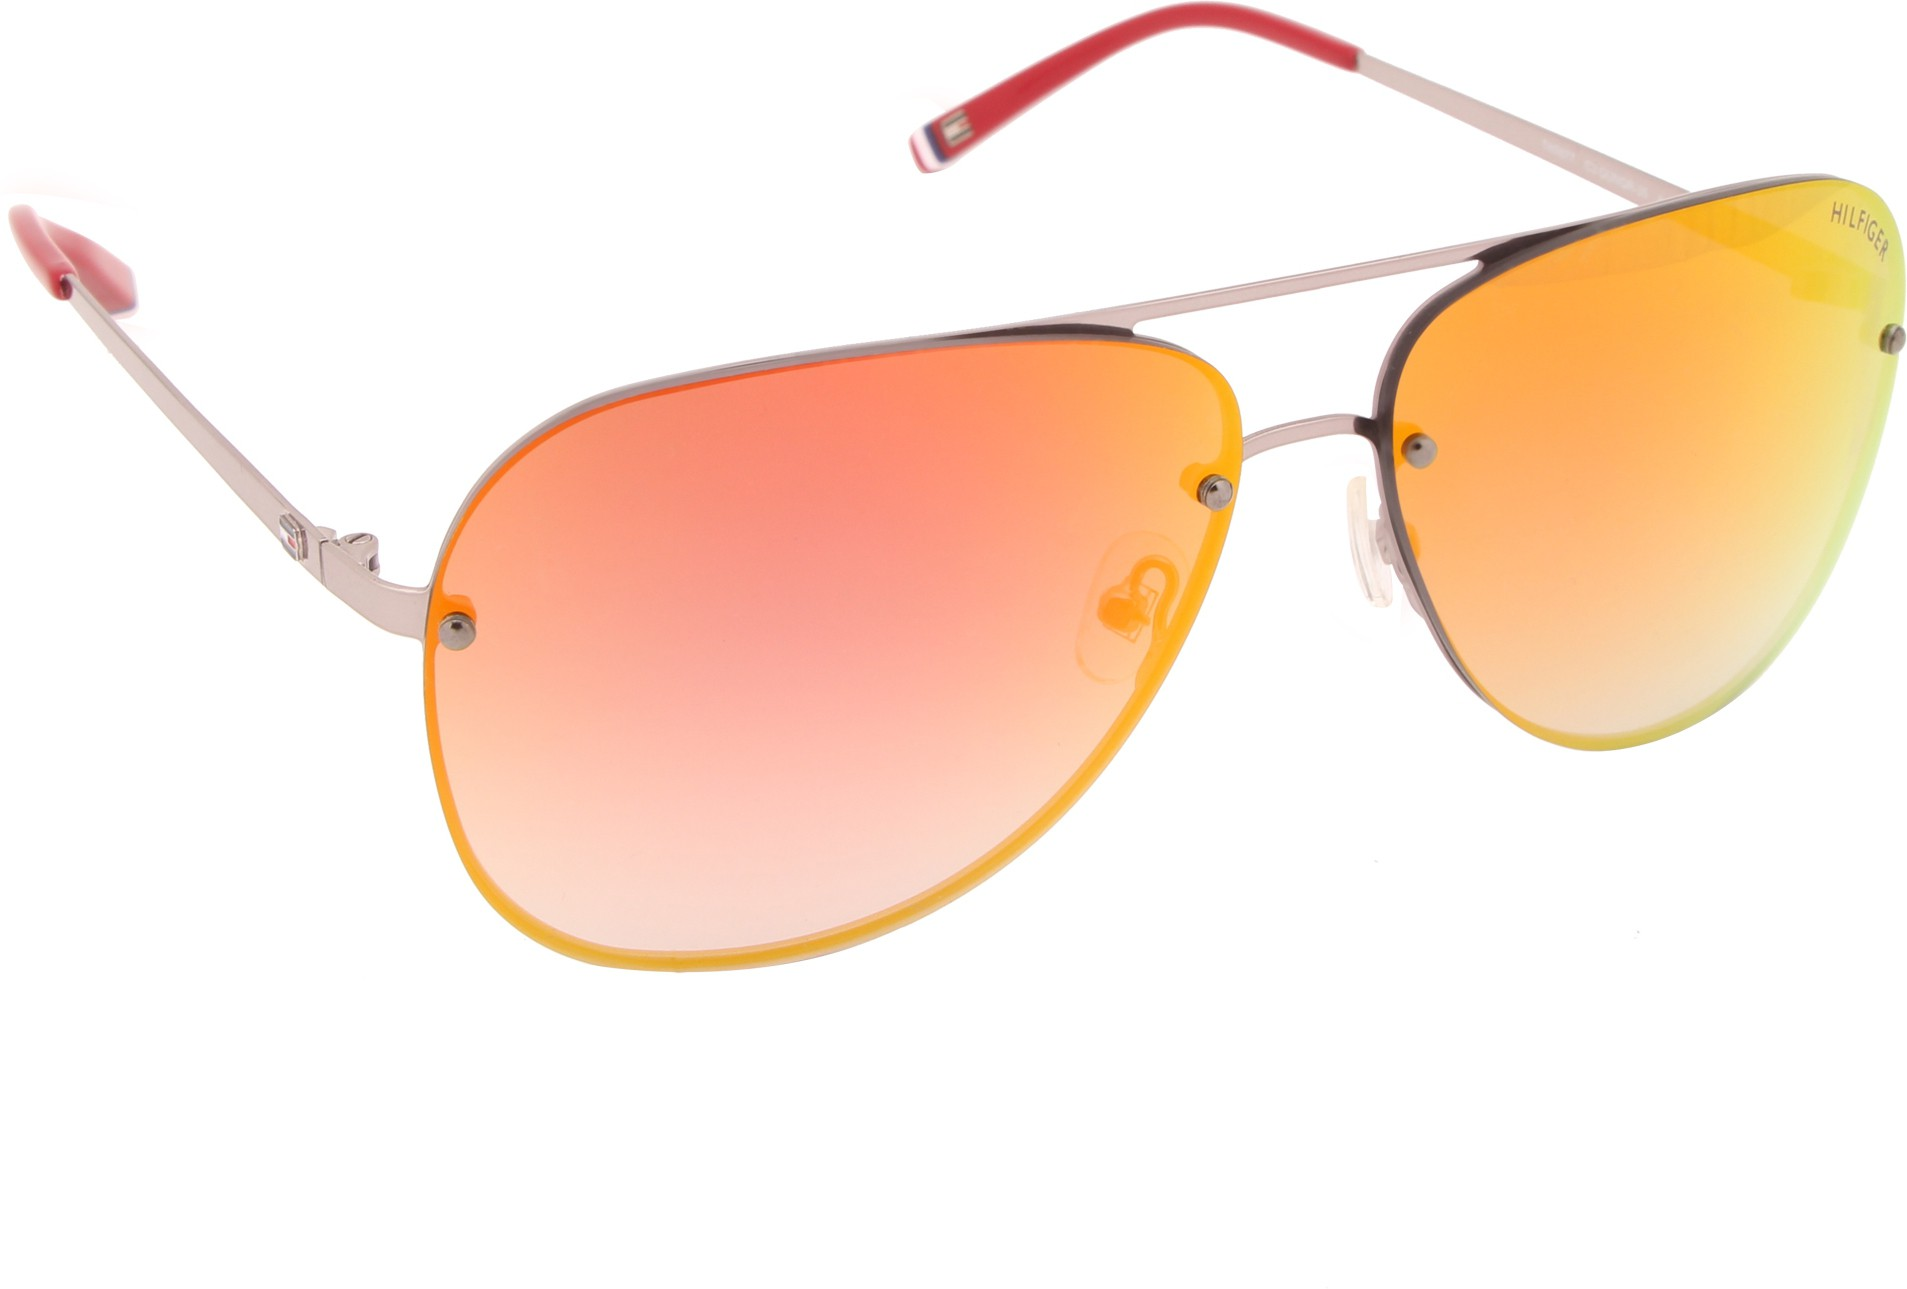 Deals | Just Launched Carrera,SMITH, Remanika & more